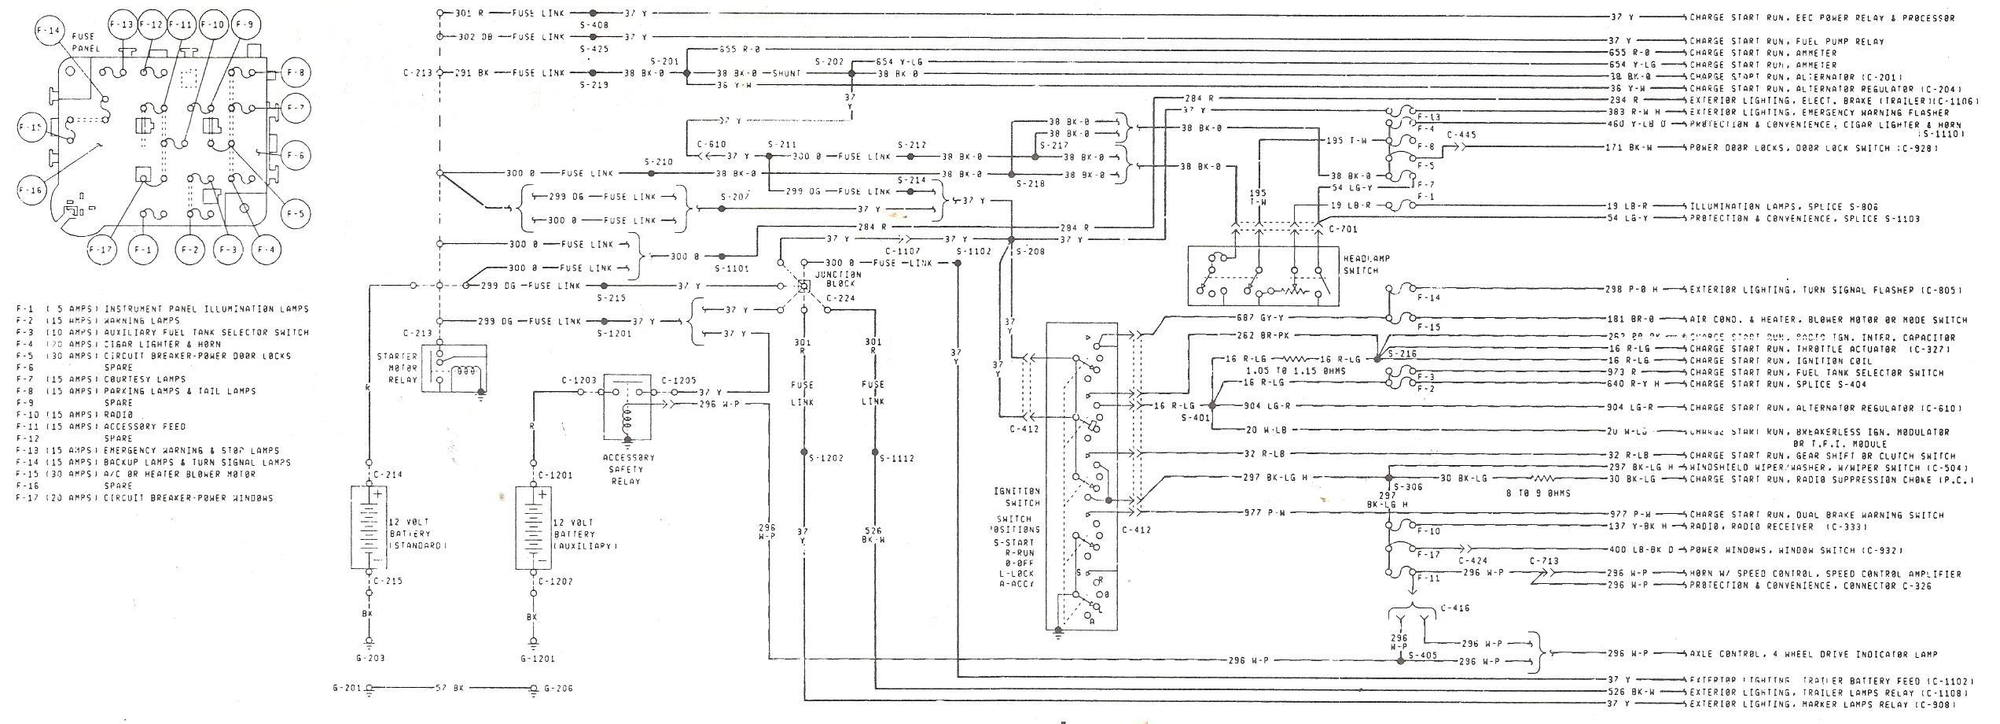 Alternator Wiring Diagram 1984 F150 302, Alternator, Free